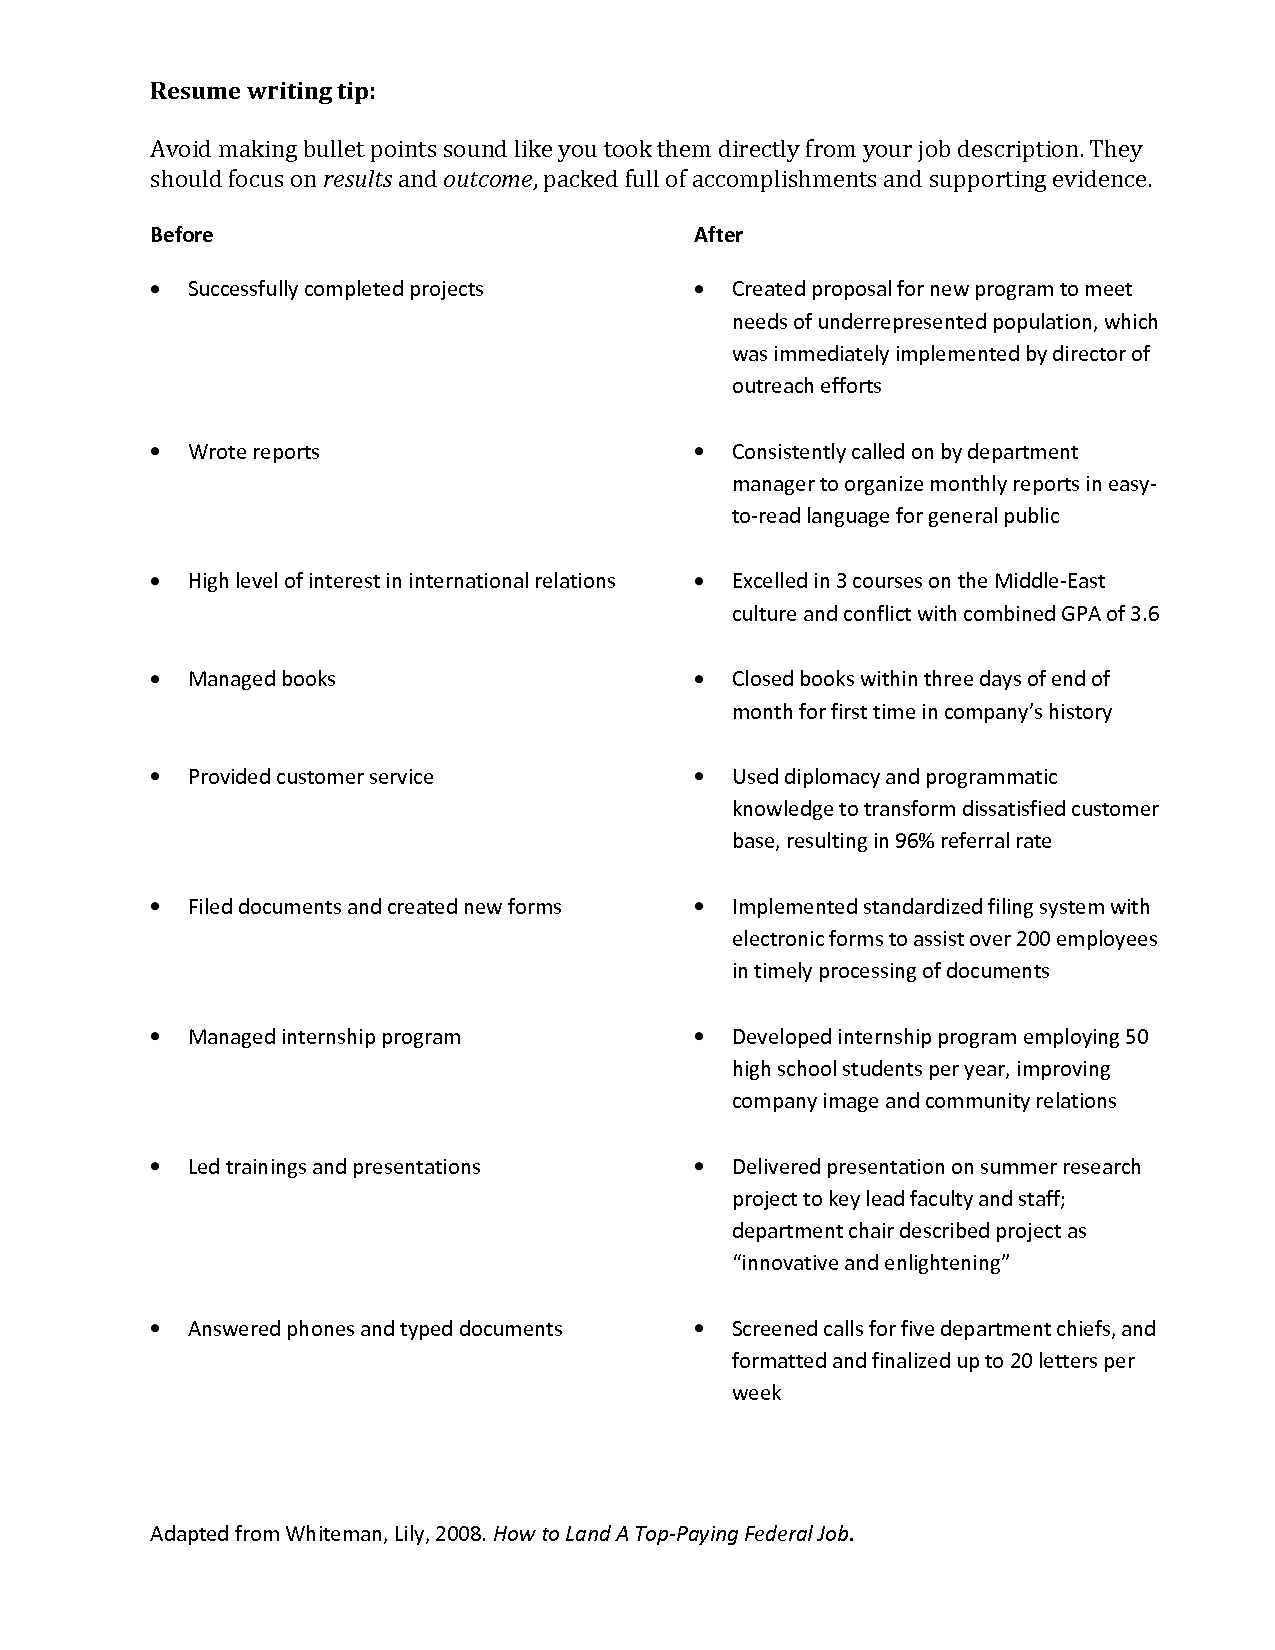 Resume Writing Examples Resume Template For Google Resume Writing Coverwriting A Resume